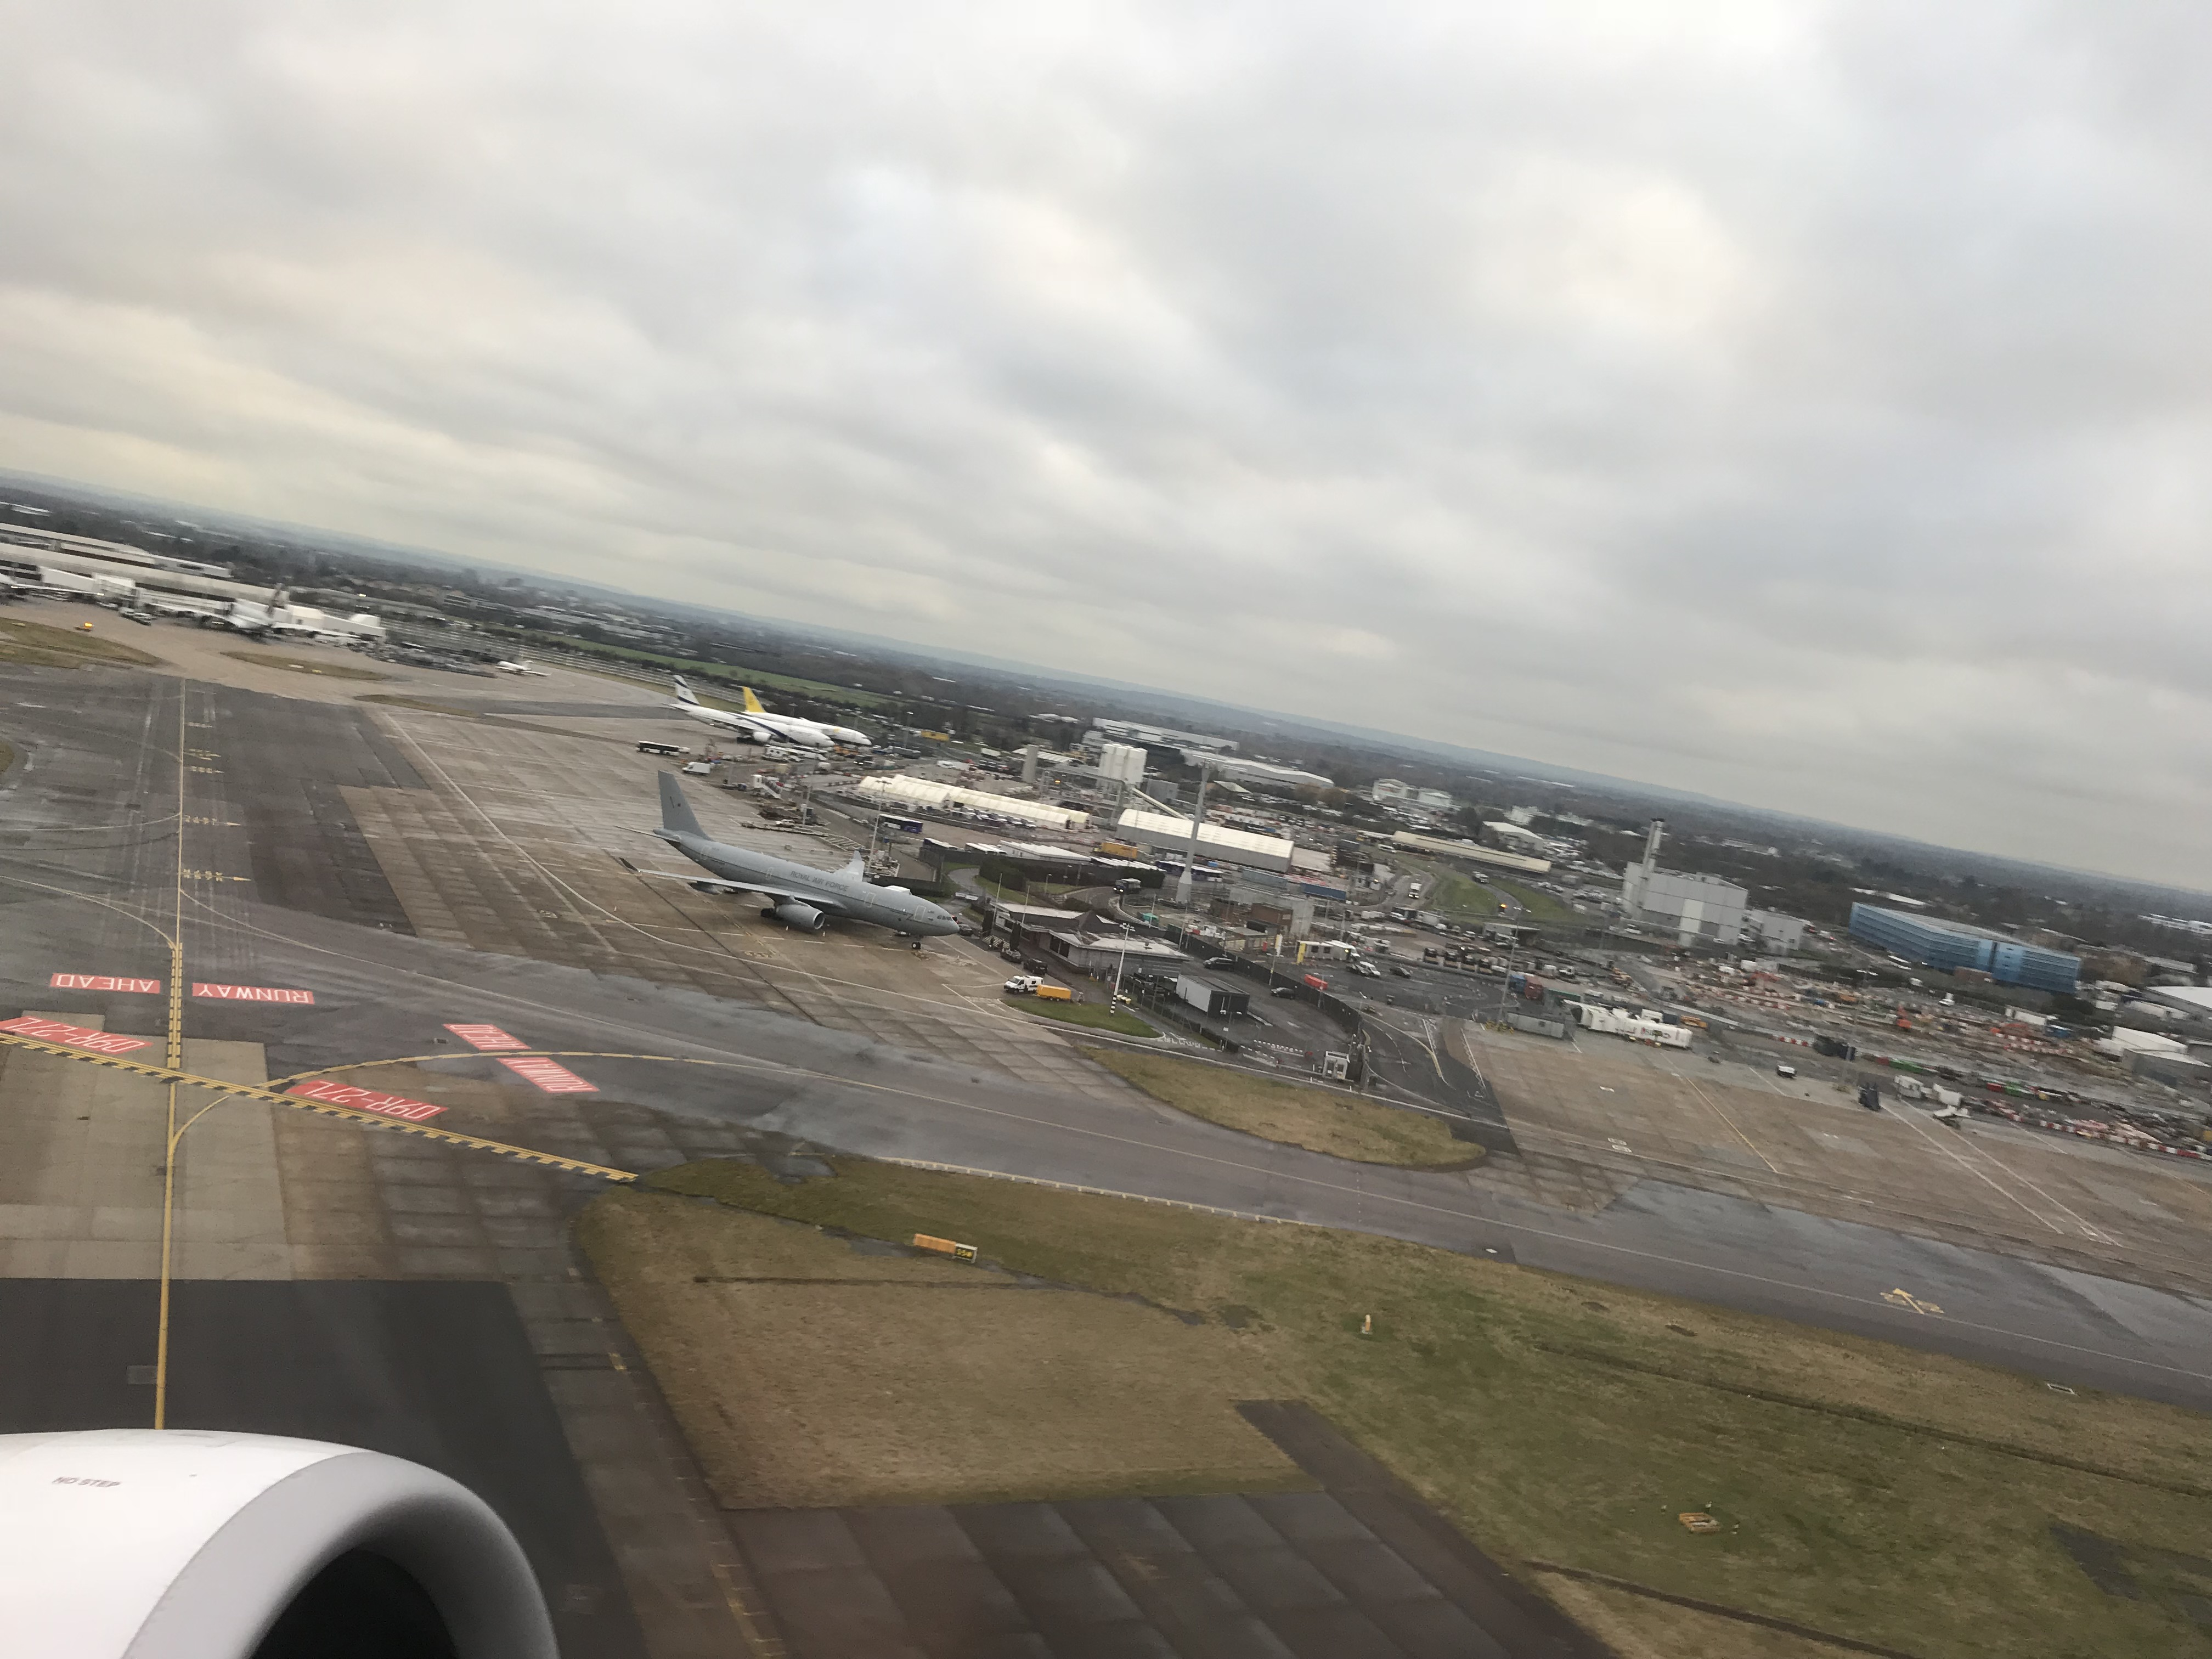 Take off from London Heathrow